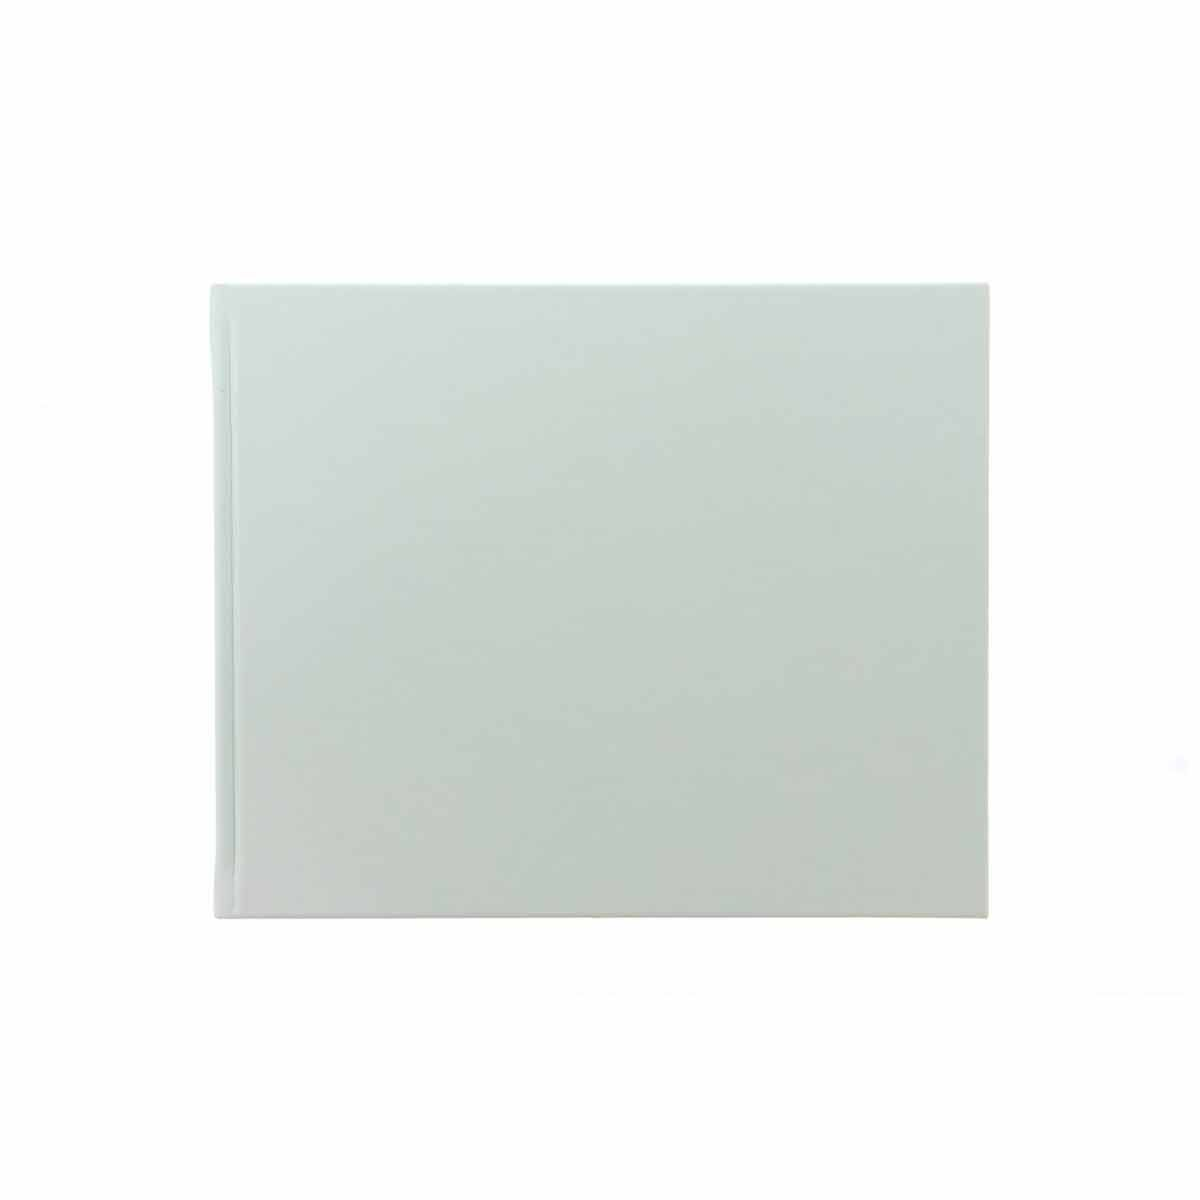 Letts Occasions Pastel Guest Book Duck Egg Blue